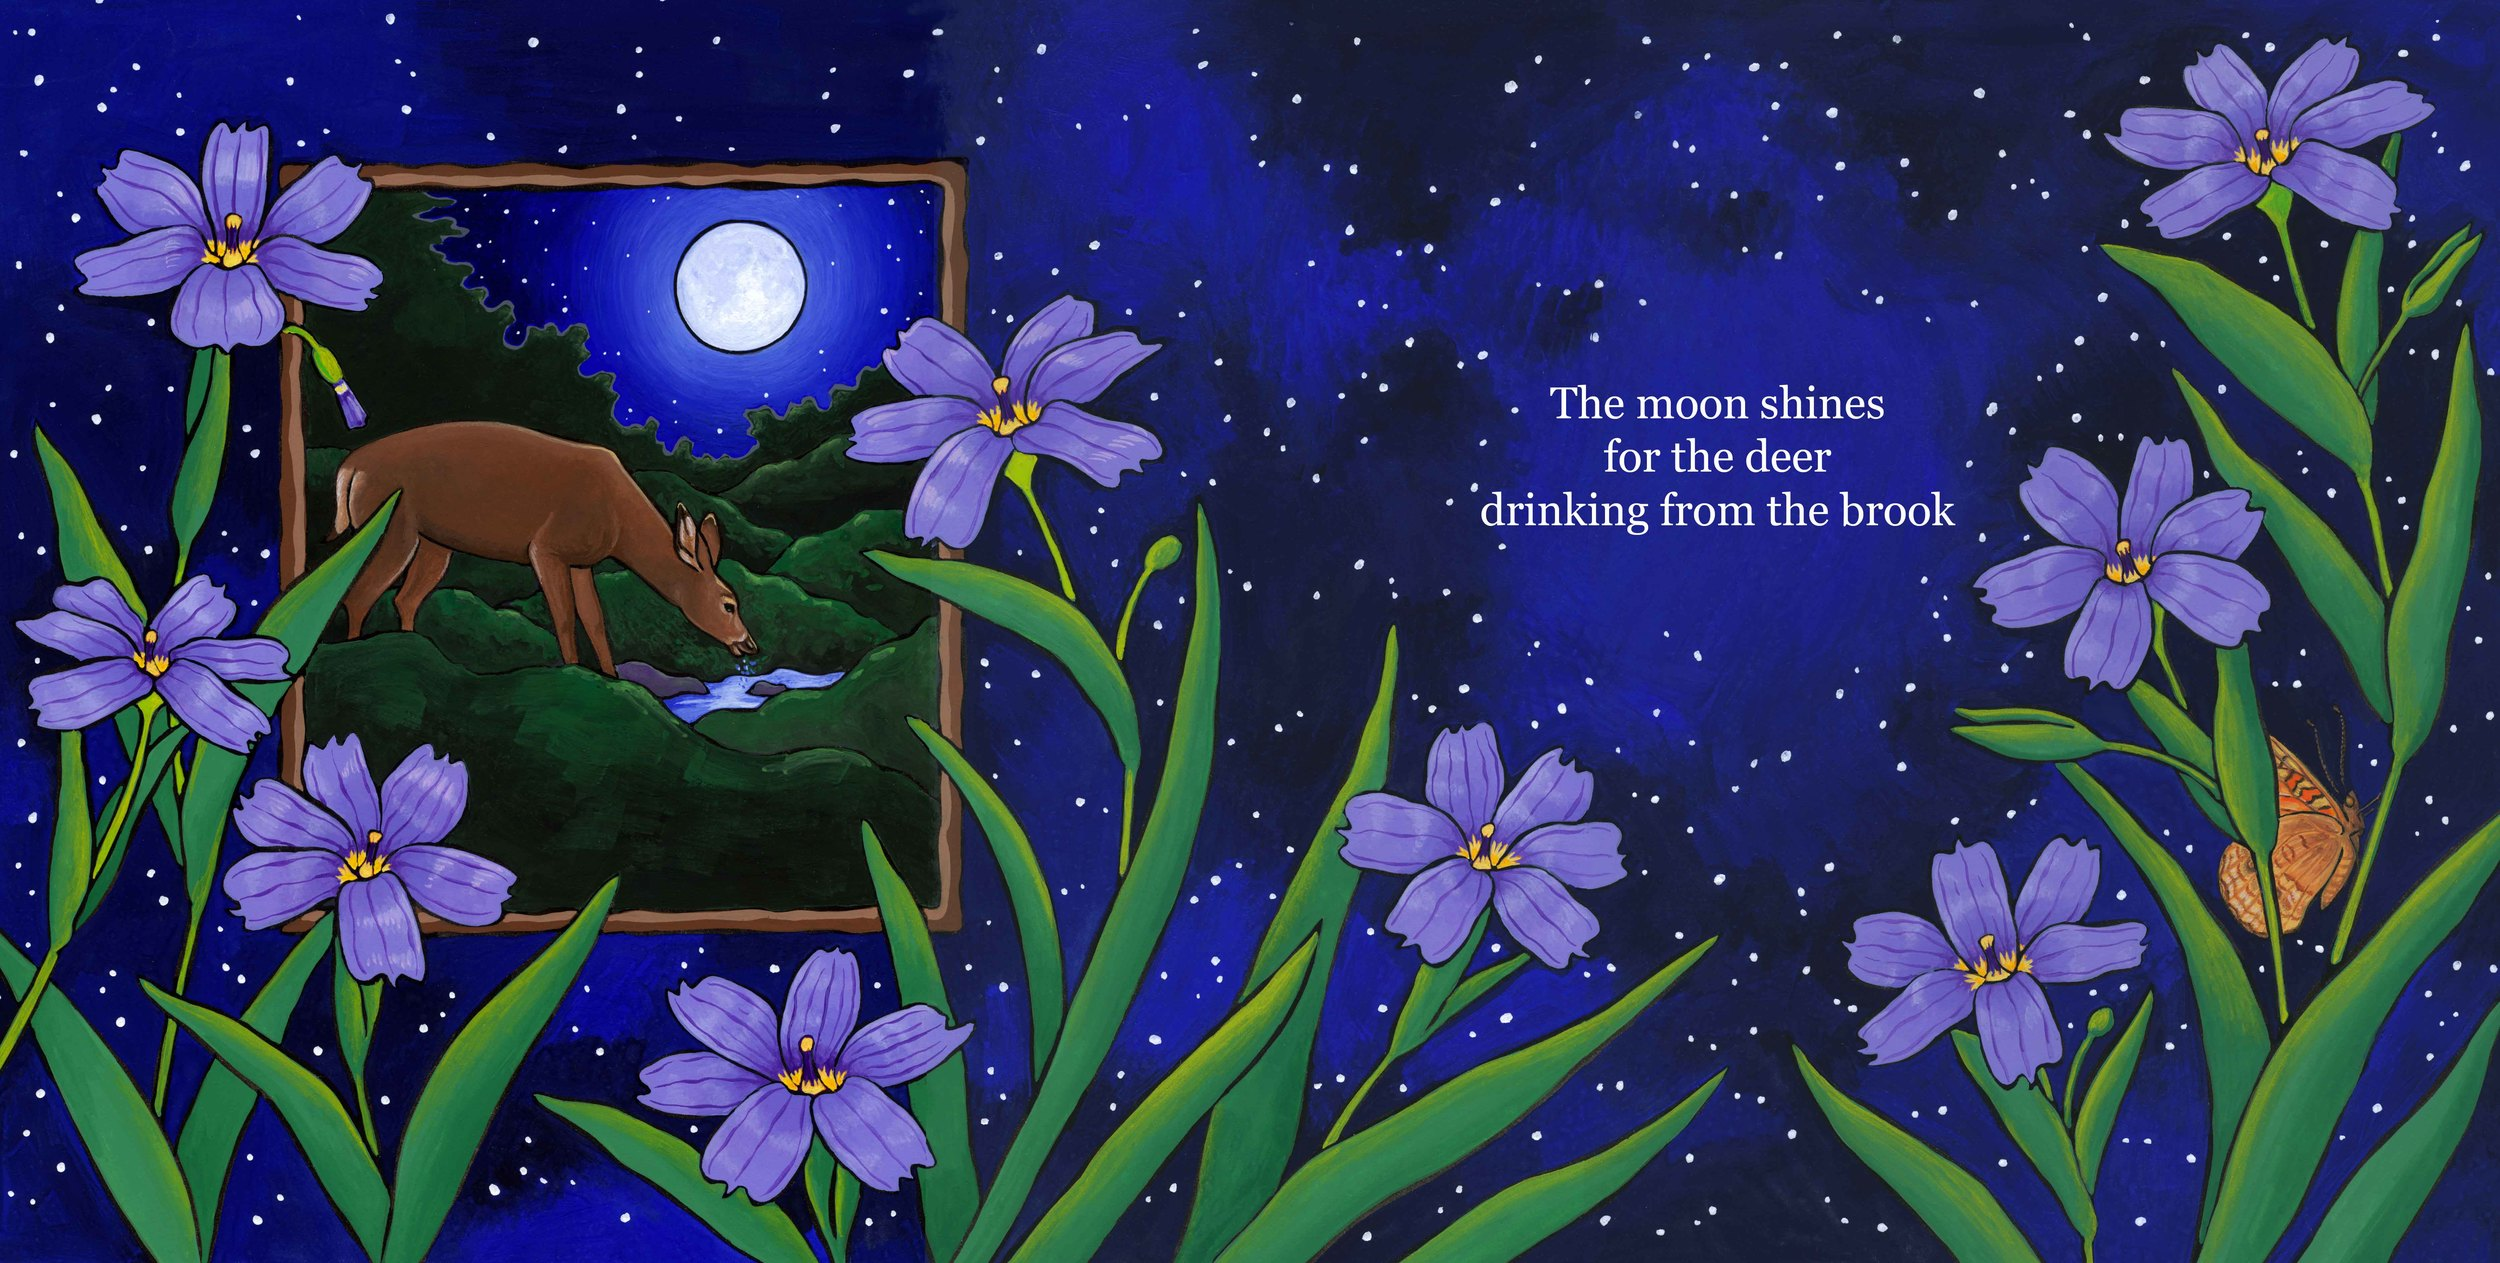 shining moon-deer words.jpg